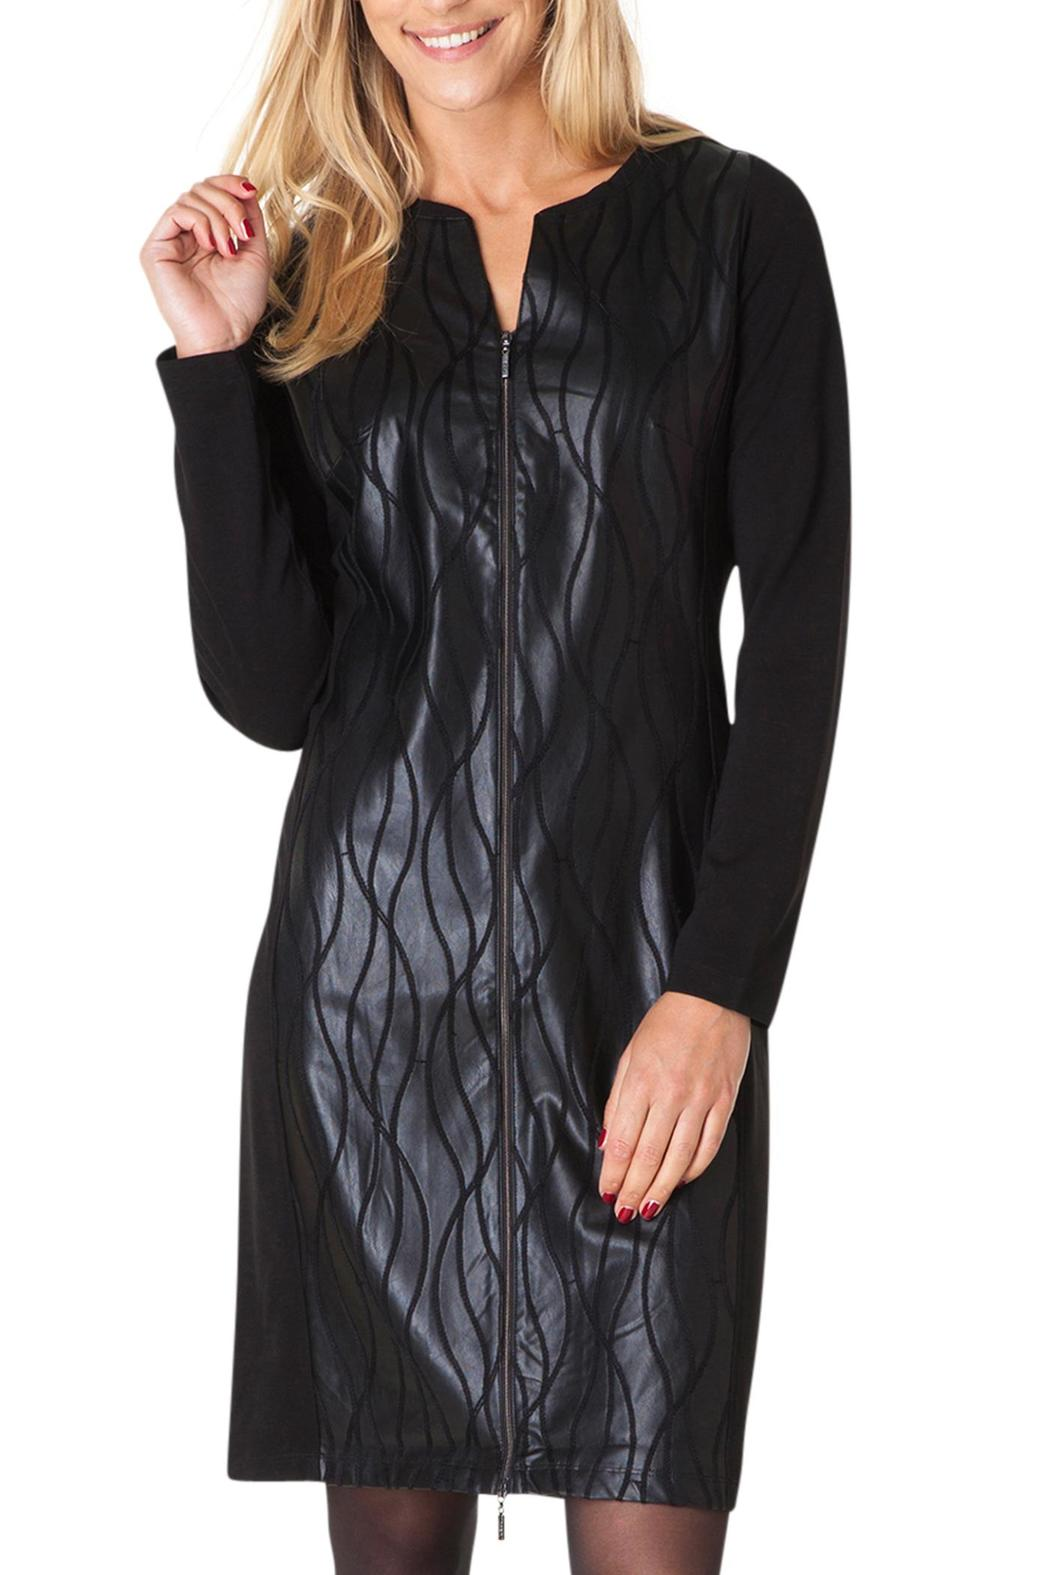 Yest Faux Leather Dress - Main Image